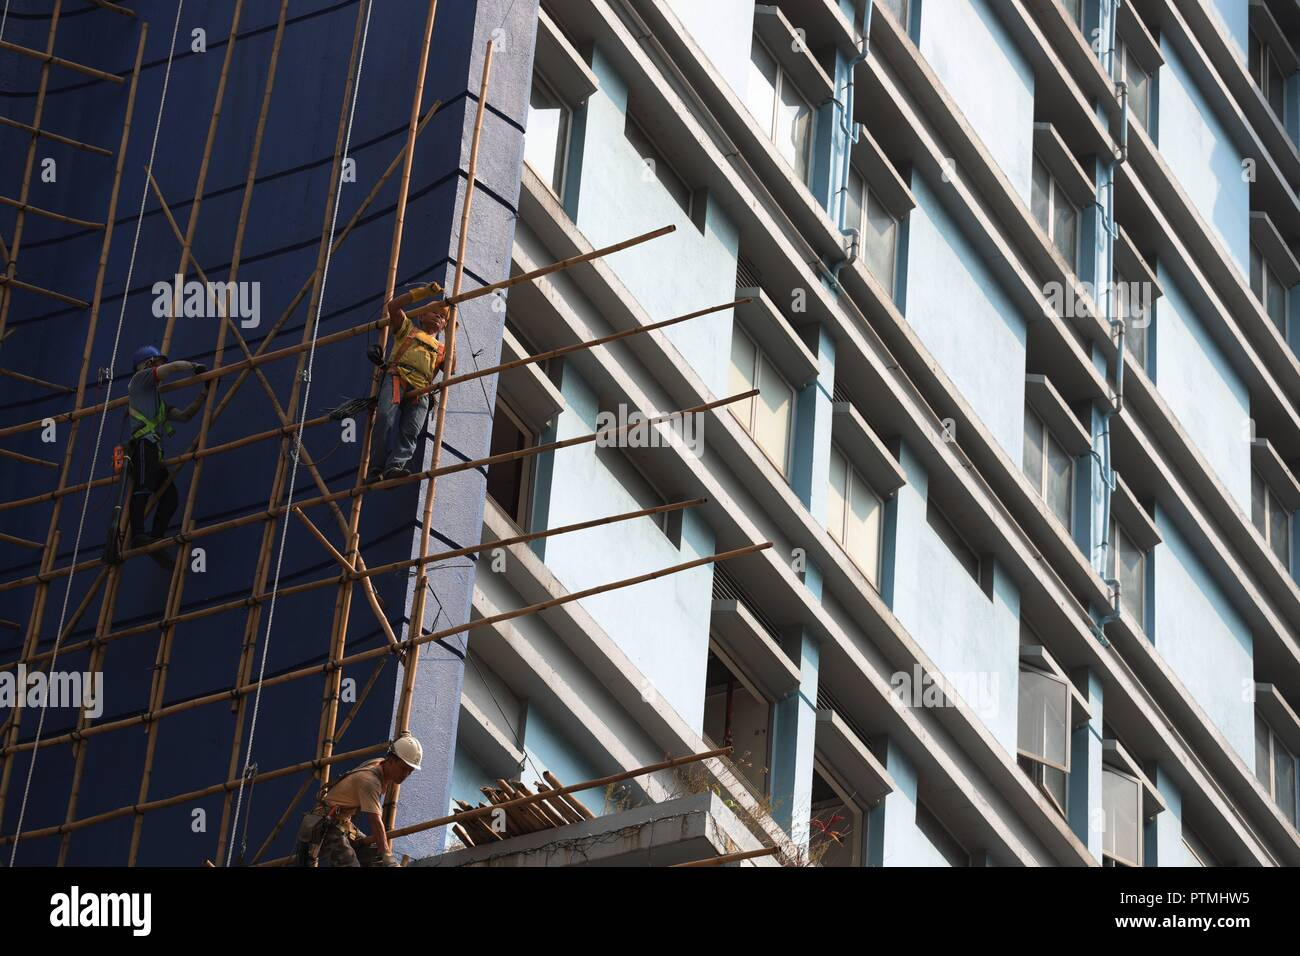 Hong Kong, CHINA. 10th Oct, 2018. Workers perform their duty skillfully on the bamboo scaffoldings outside the hotel awaiting to be demolished. Hong Kong is a place where Chinese traditional art of bamboo scaffoldings are being kept as a classic architectural heritage.Oct-10, 2018 Hong Kong.ZUMA/Liau Chung-ren Credit: Liau Chung-ren/ZUMA Wire/Alamy Live News - Stock Image